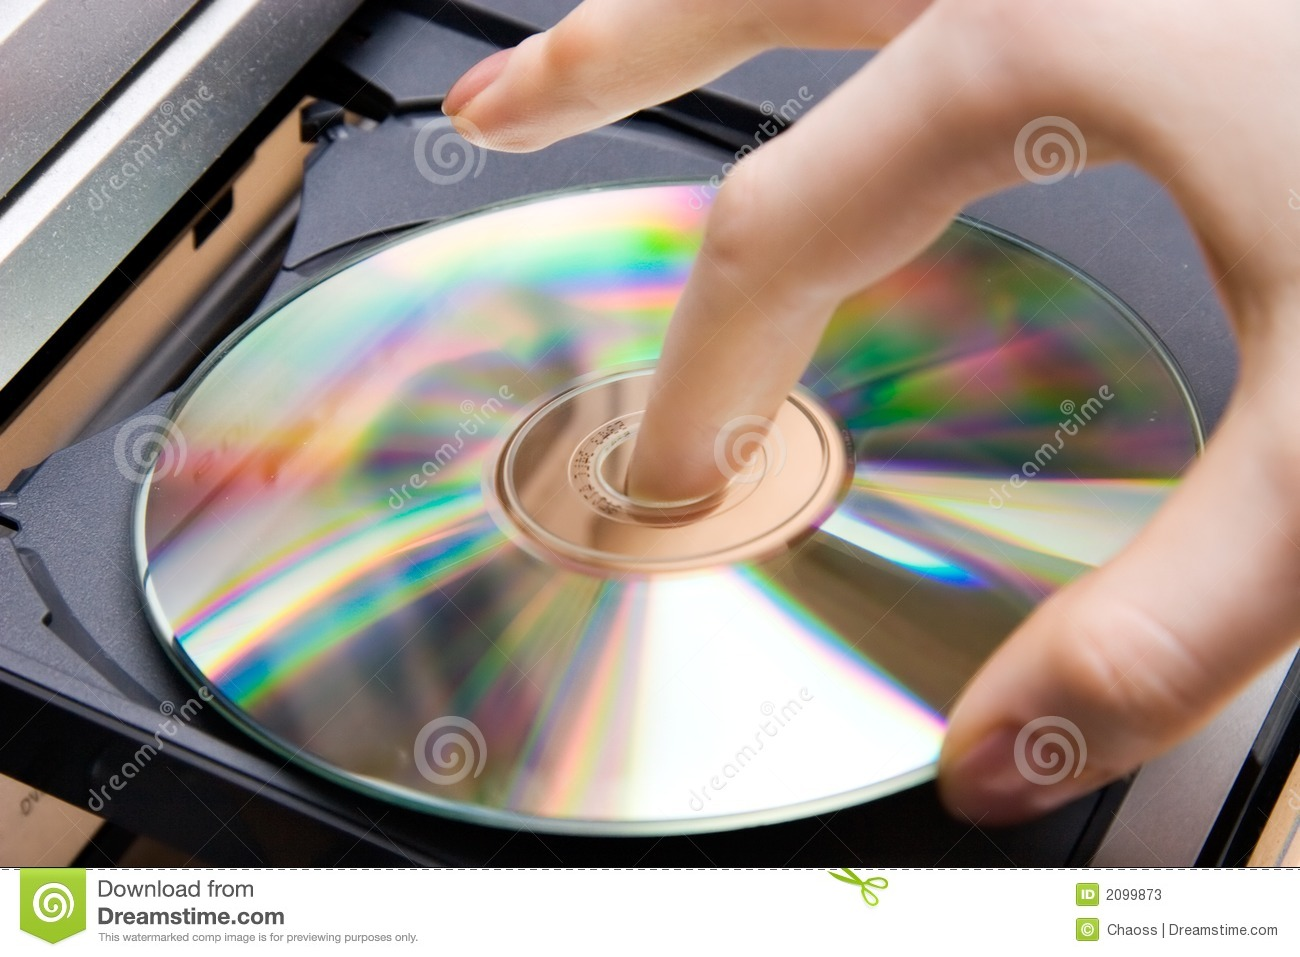 how to download music from a cd onto your laptop